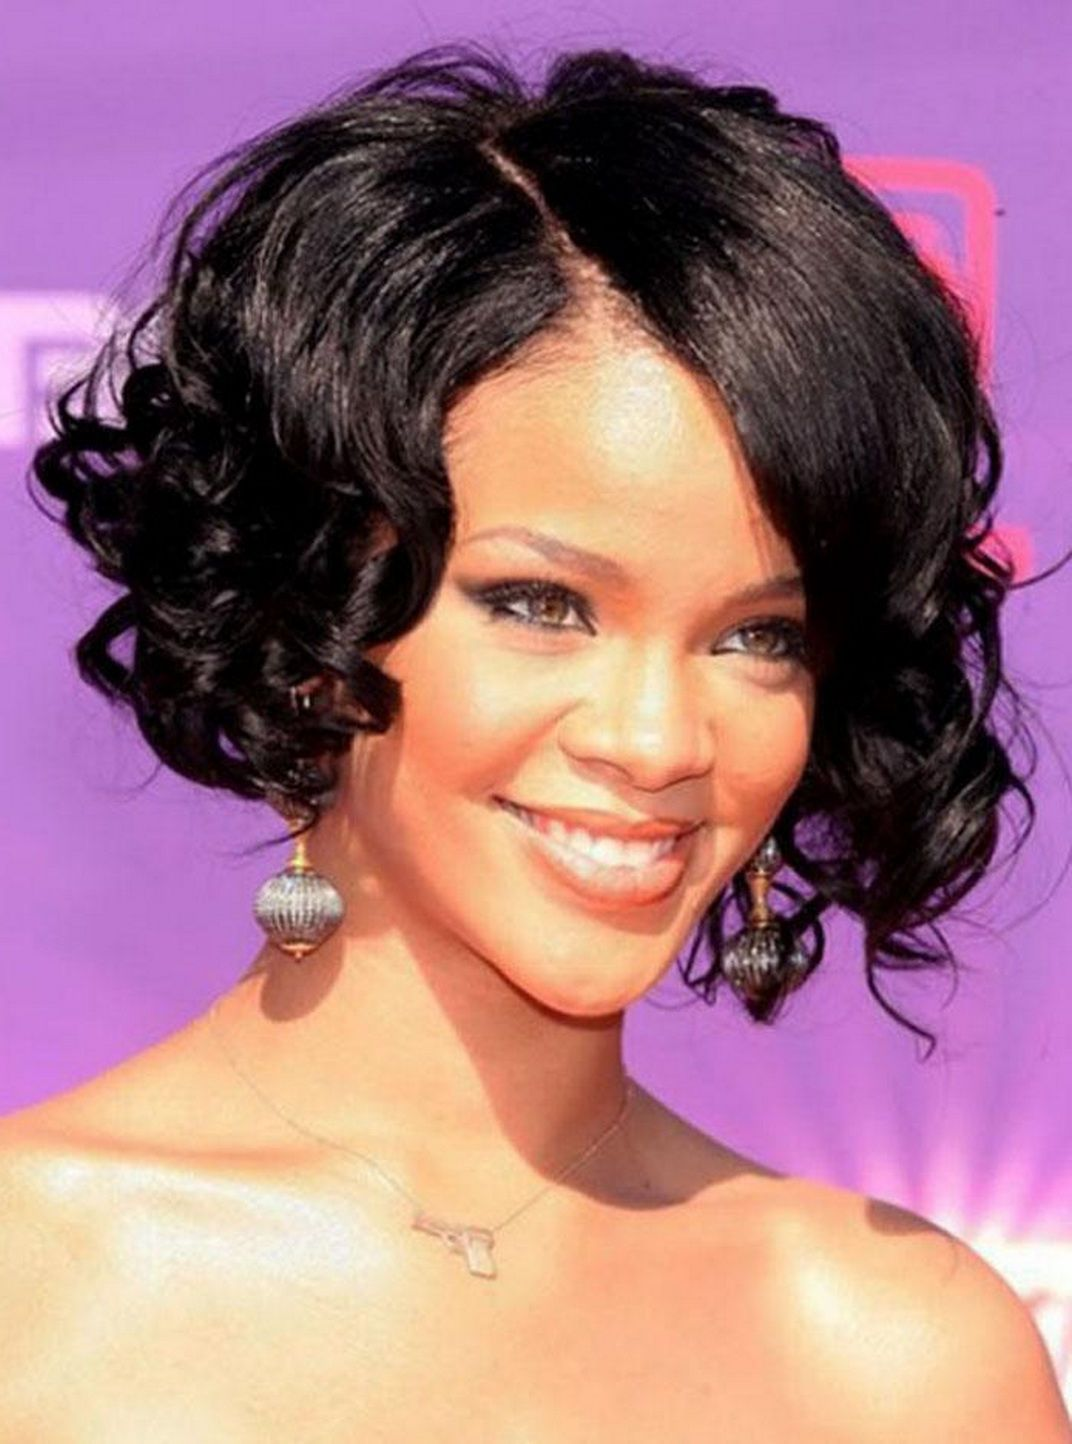 Nice Curly Bob Hairstyles For Black Women Bob Hairstyles Short Curly Bob Hairstyles Bob Haircut Curly